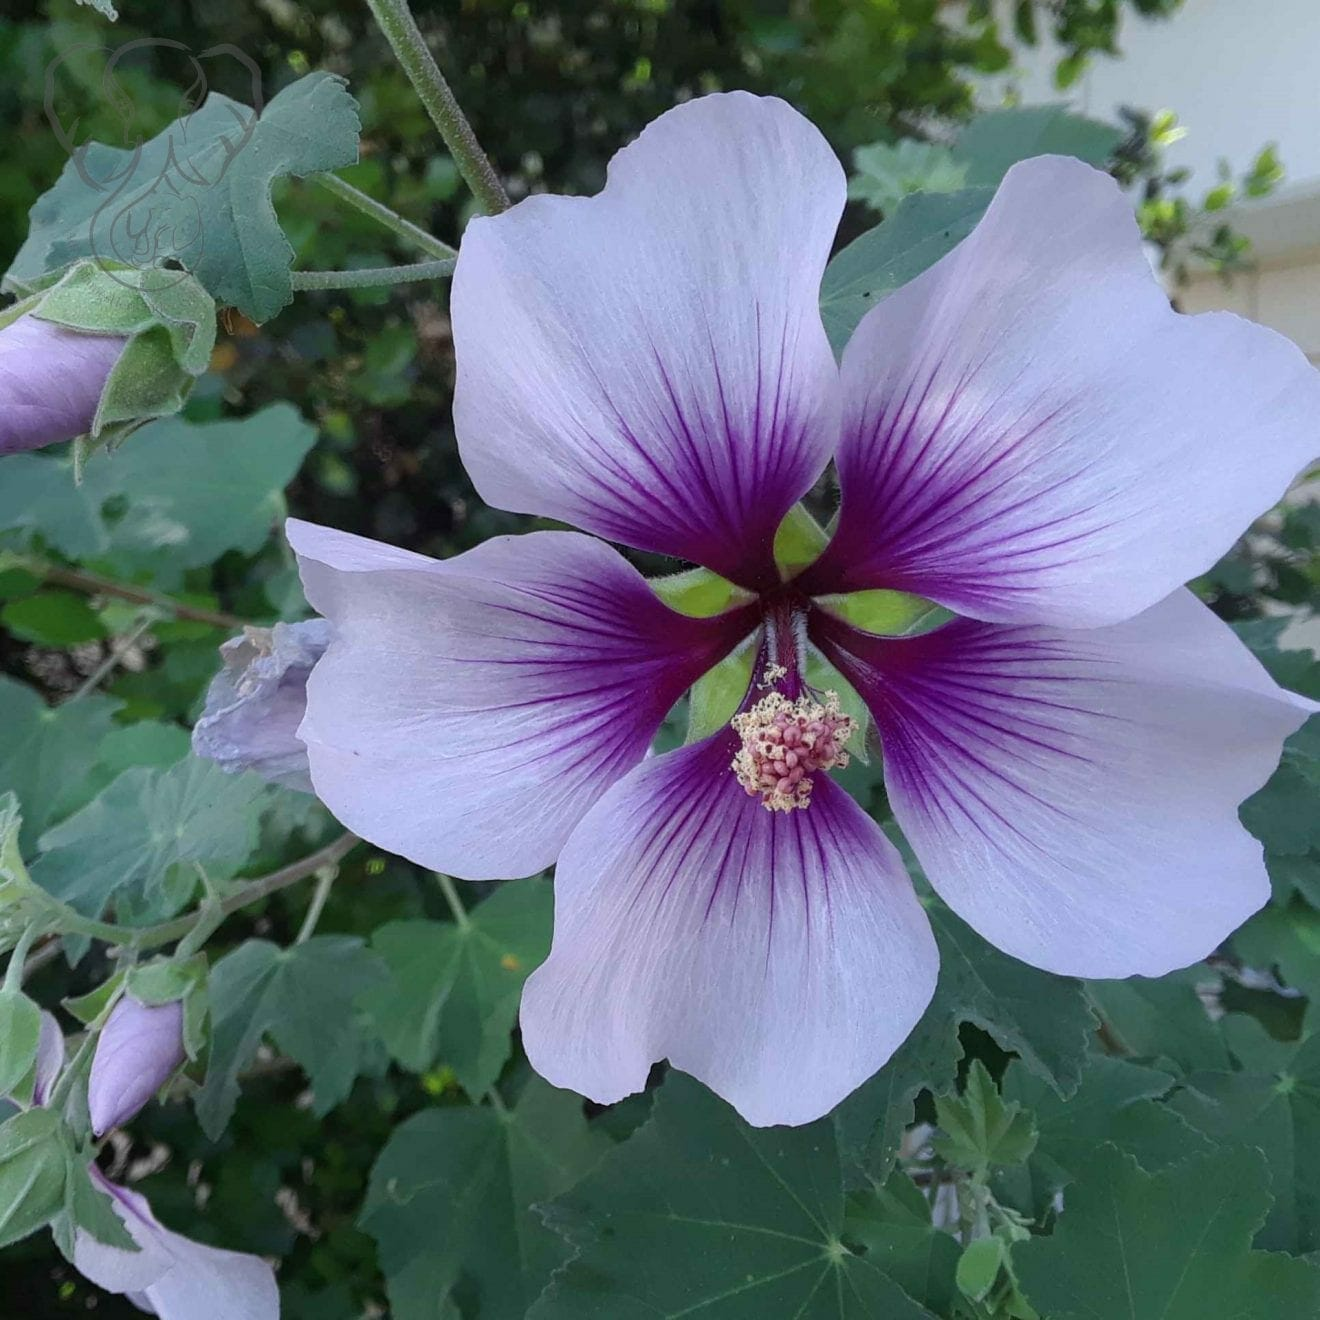 Hollyhock in California (Miranda Hernandez)